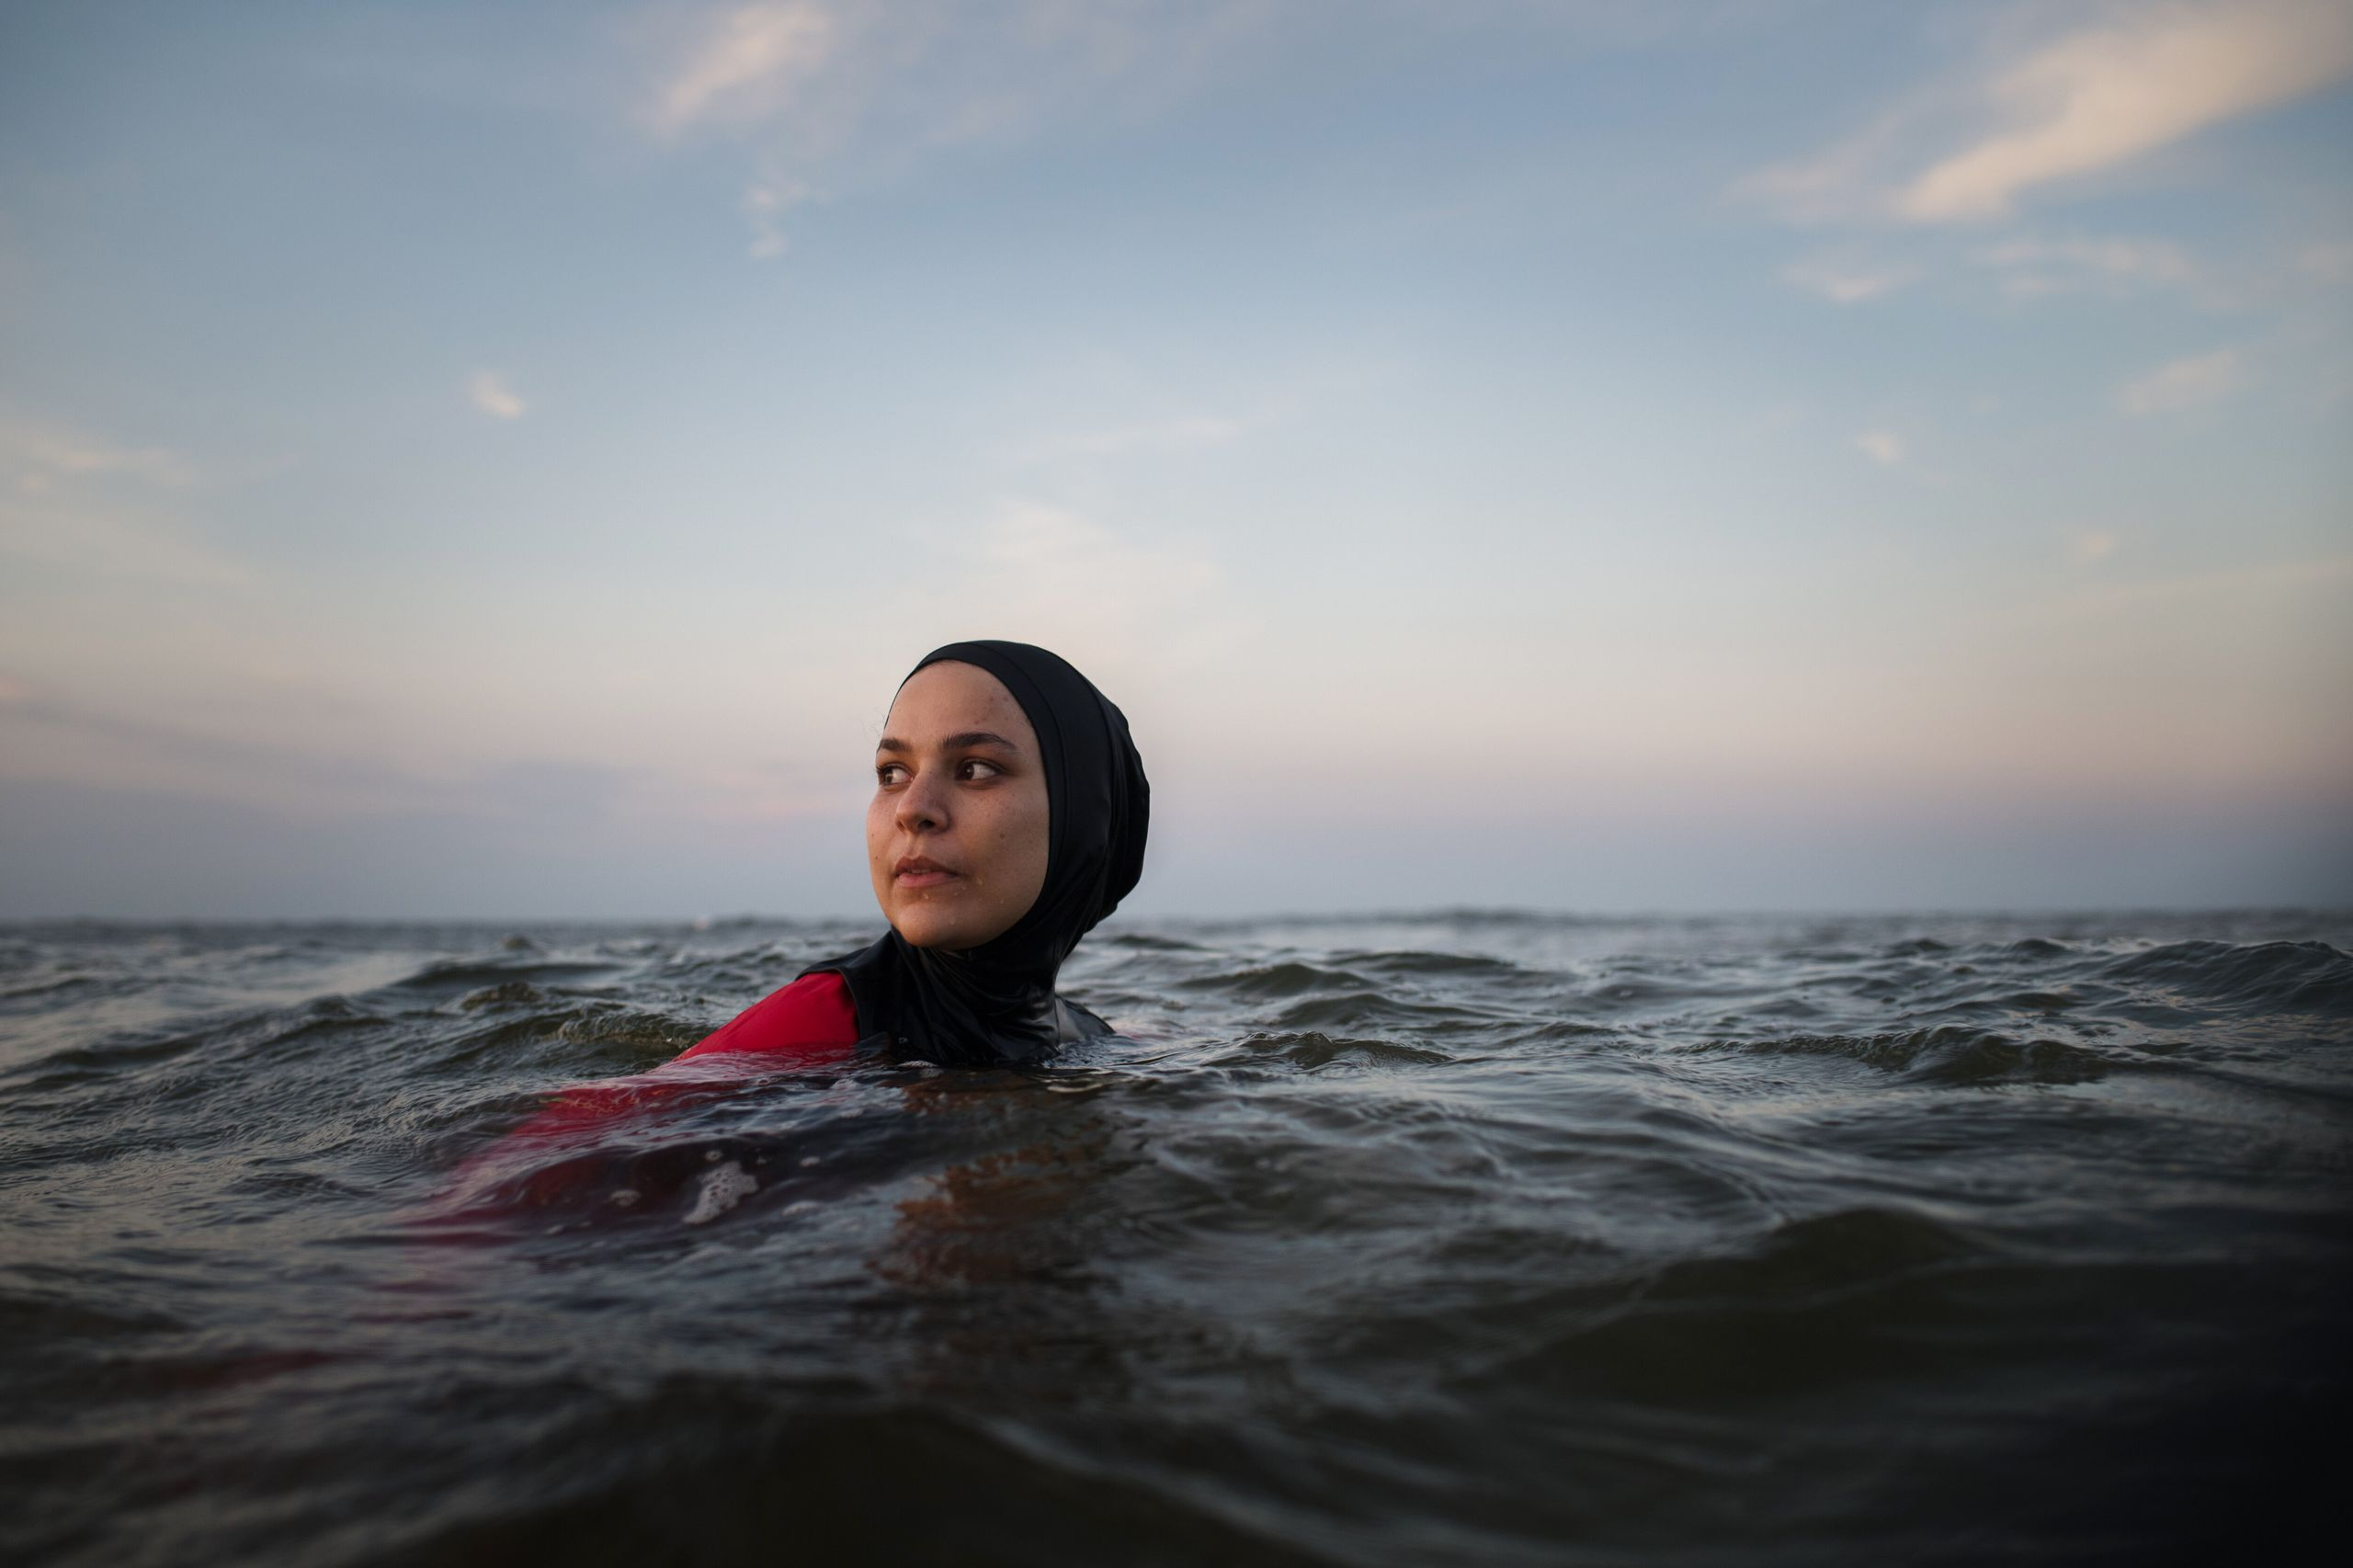 Manar Hussein at a beach in New Jersey June 26, 2019.